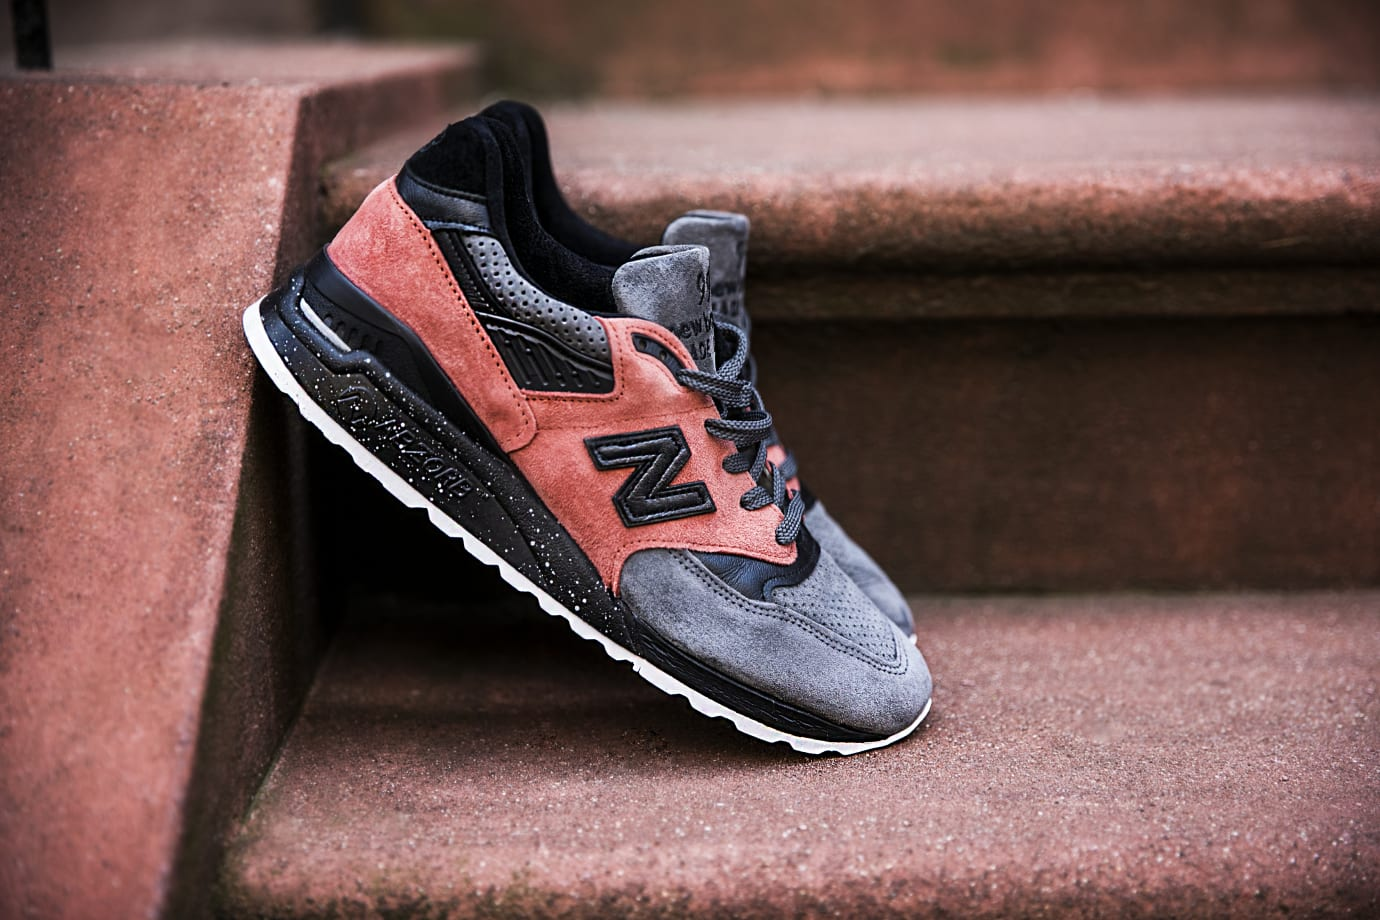 Todd Snyder x New Balance 998 NB1 'Sunset Pink' (Lateral)